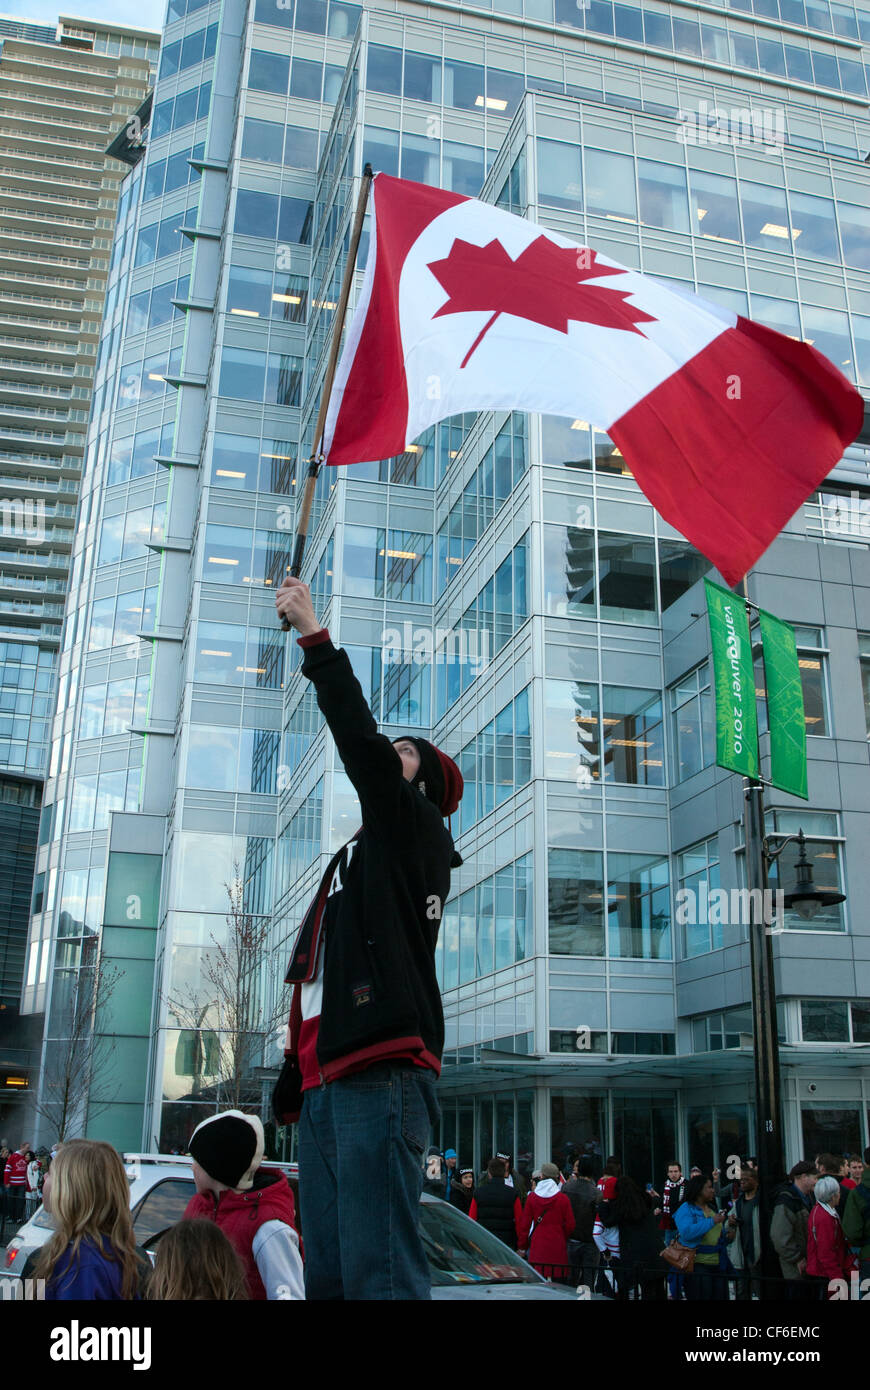 Patriotism in Canada, man waving the Canadian flag - Stock Image